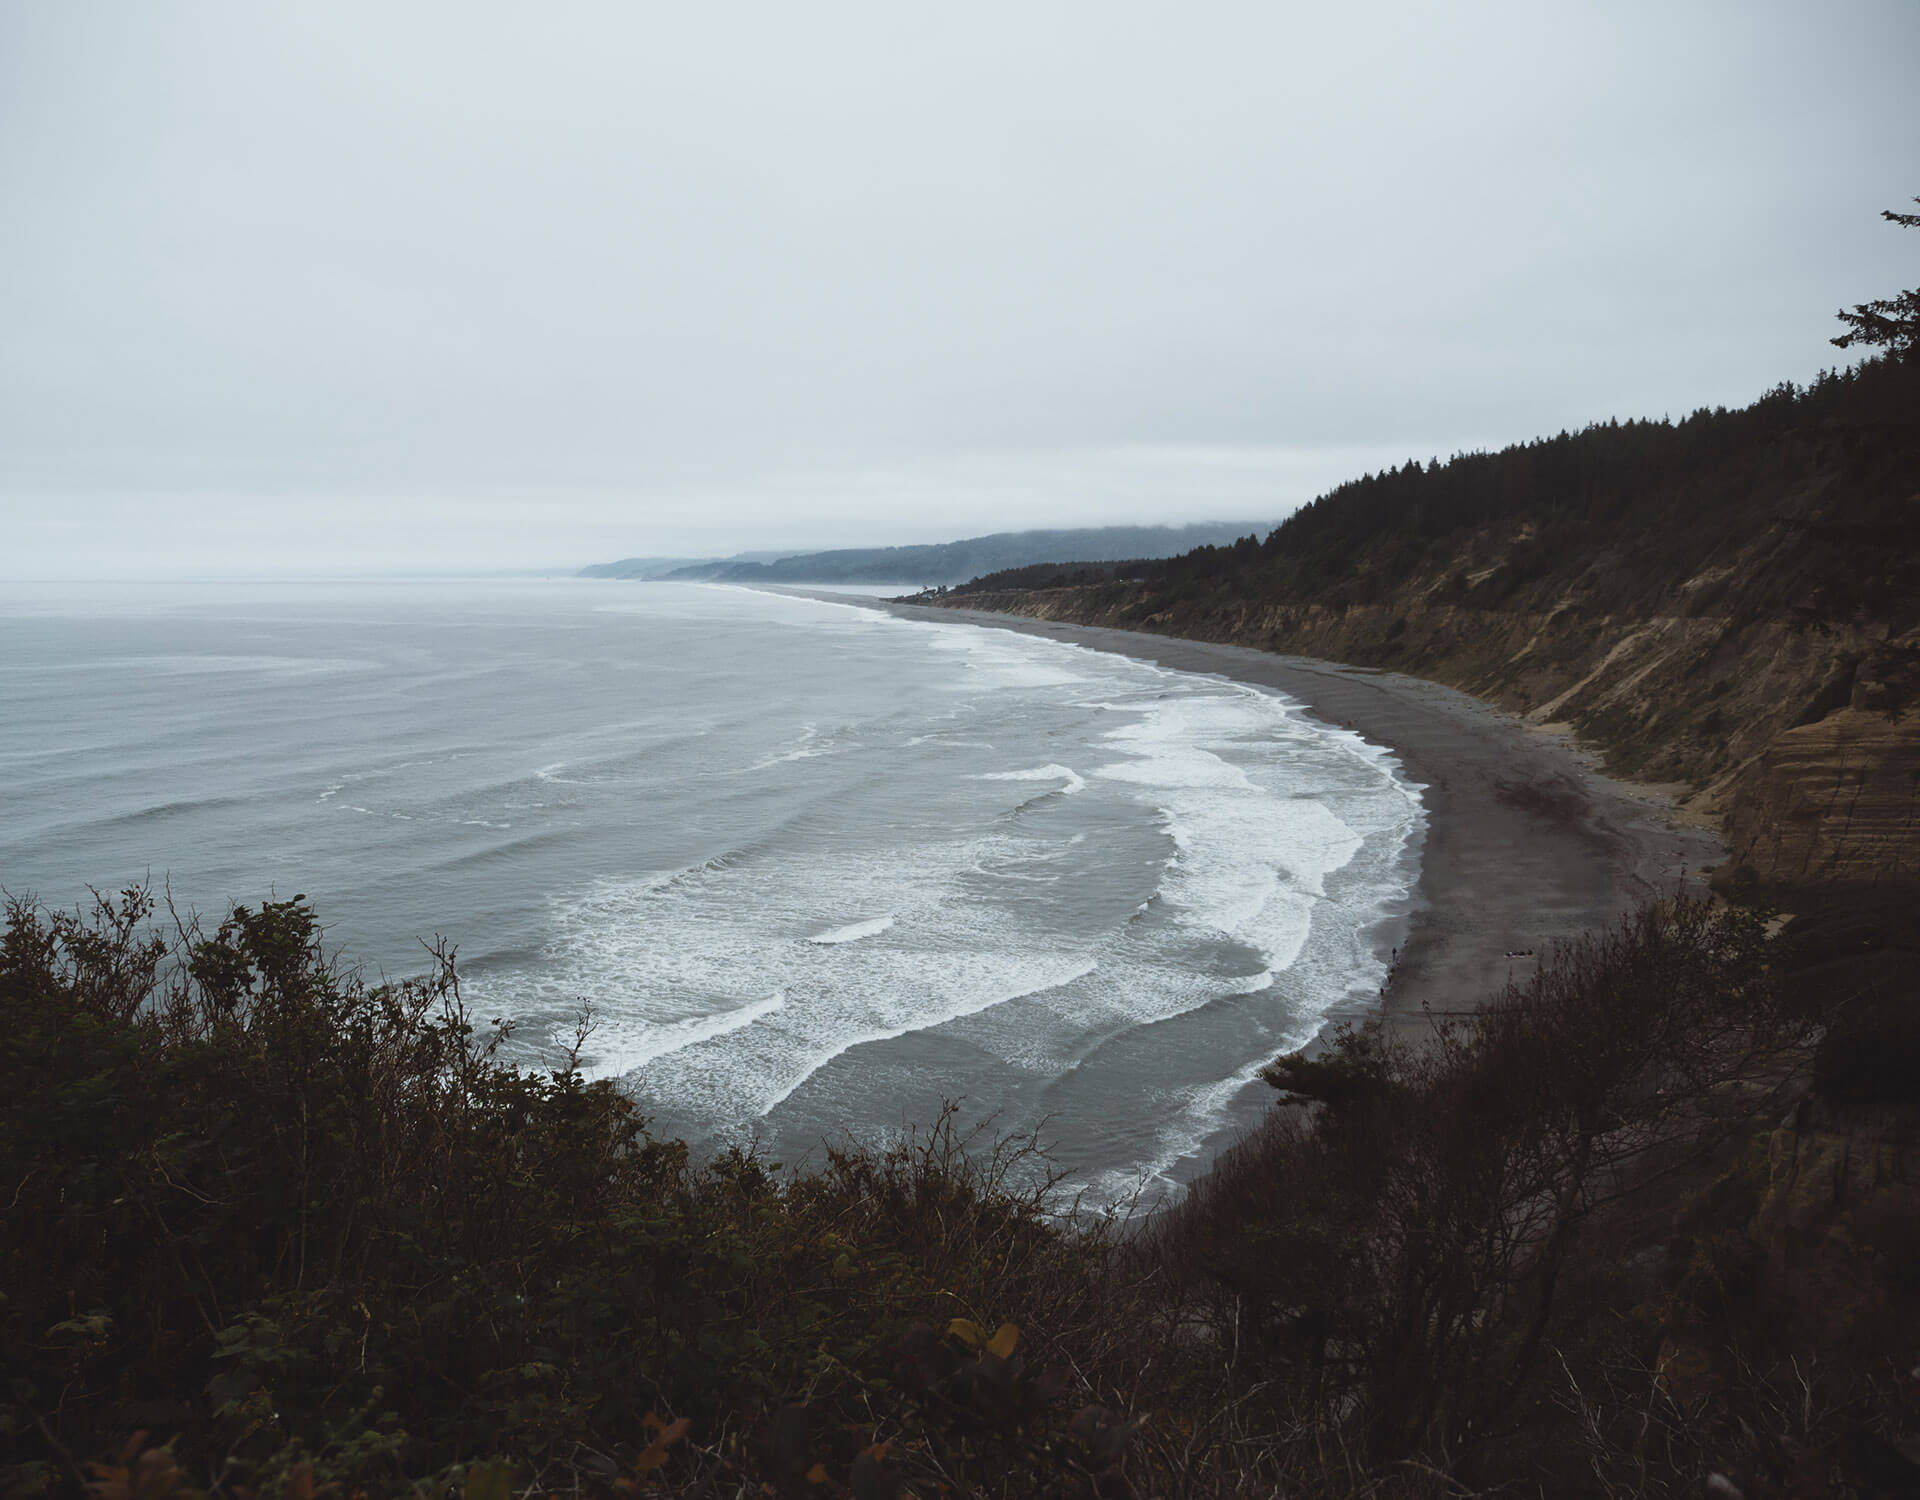 Overlooking Agate Beach